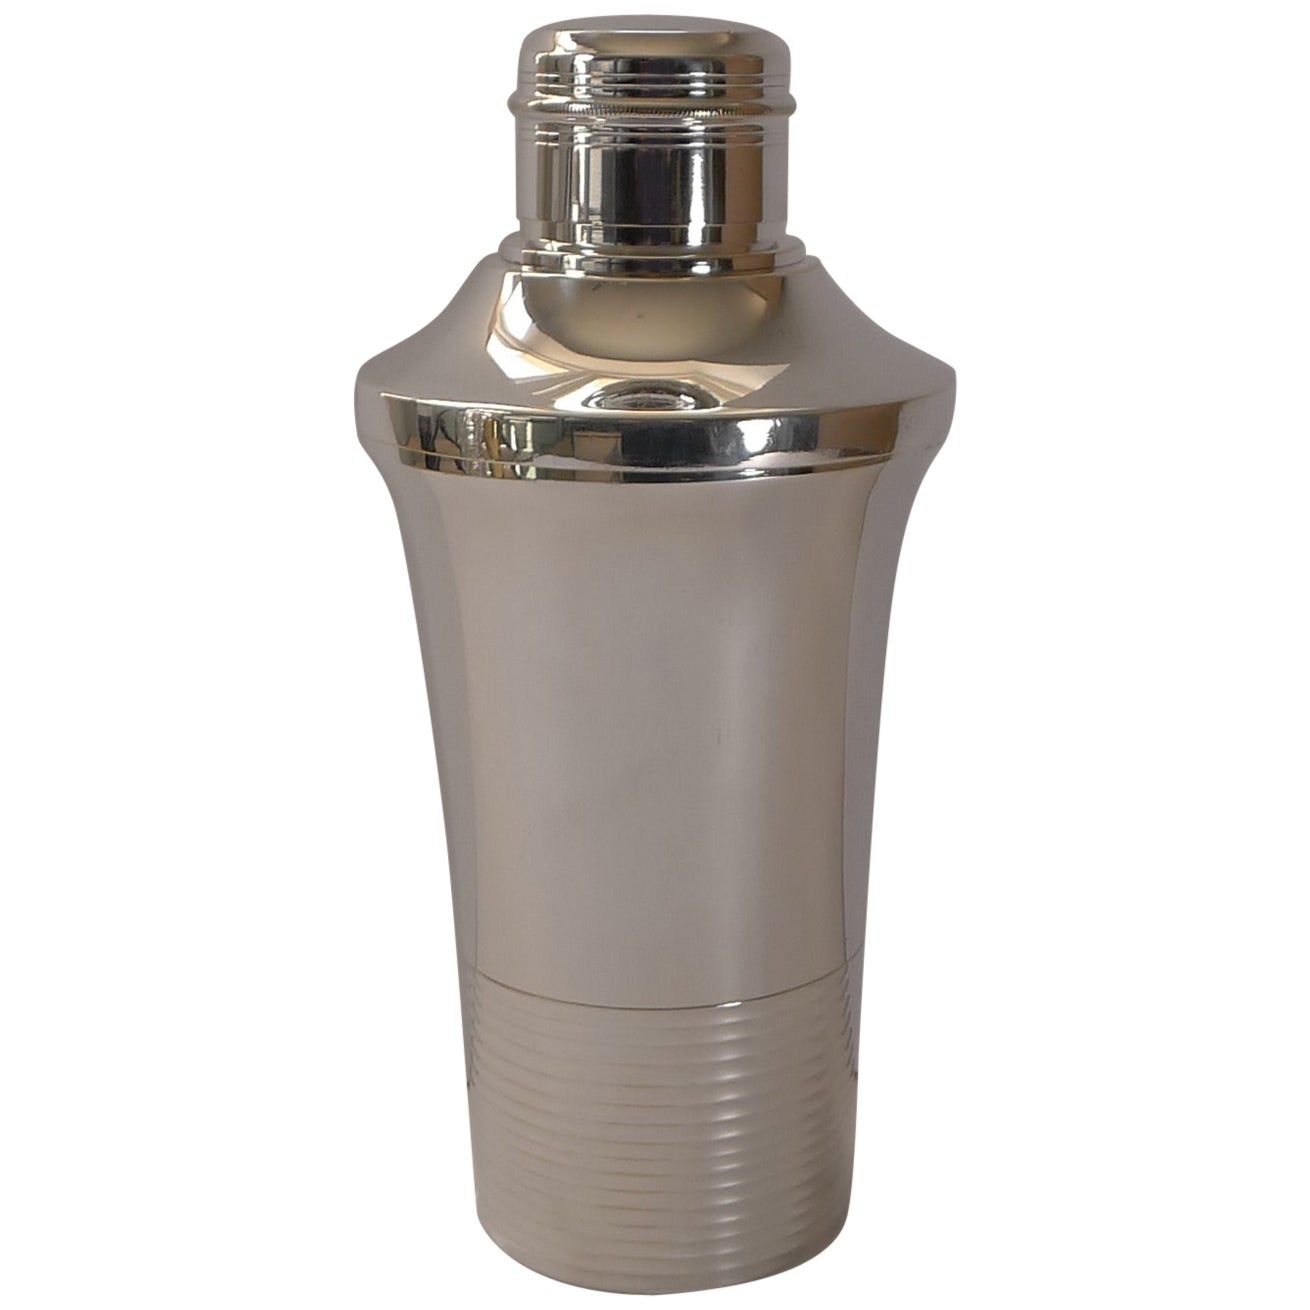 Stylish French Art Deco Silver Plated Cocktail Shaker, c.1930